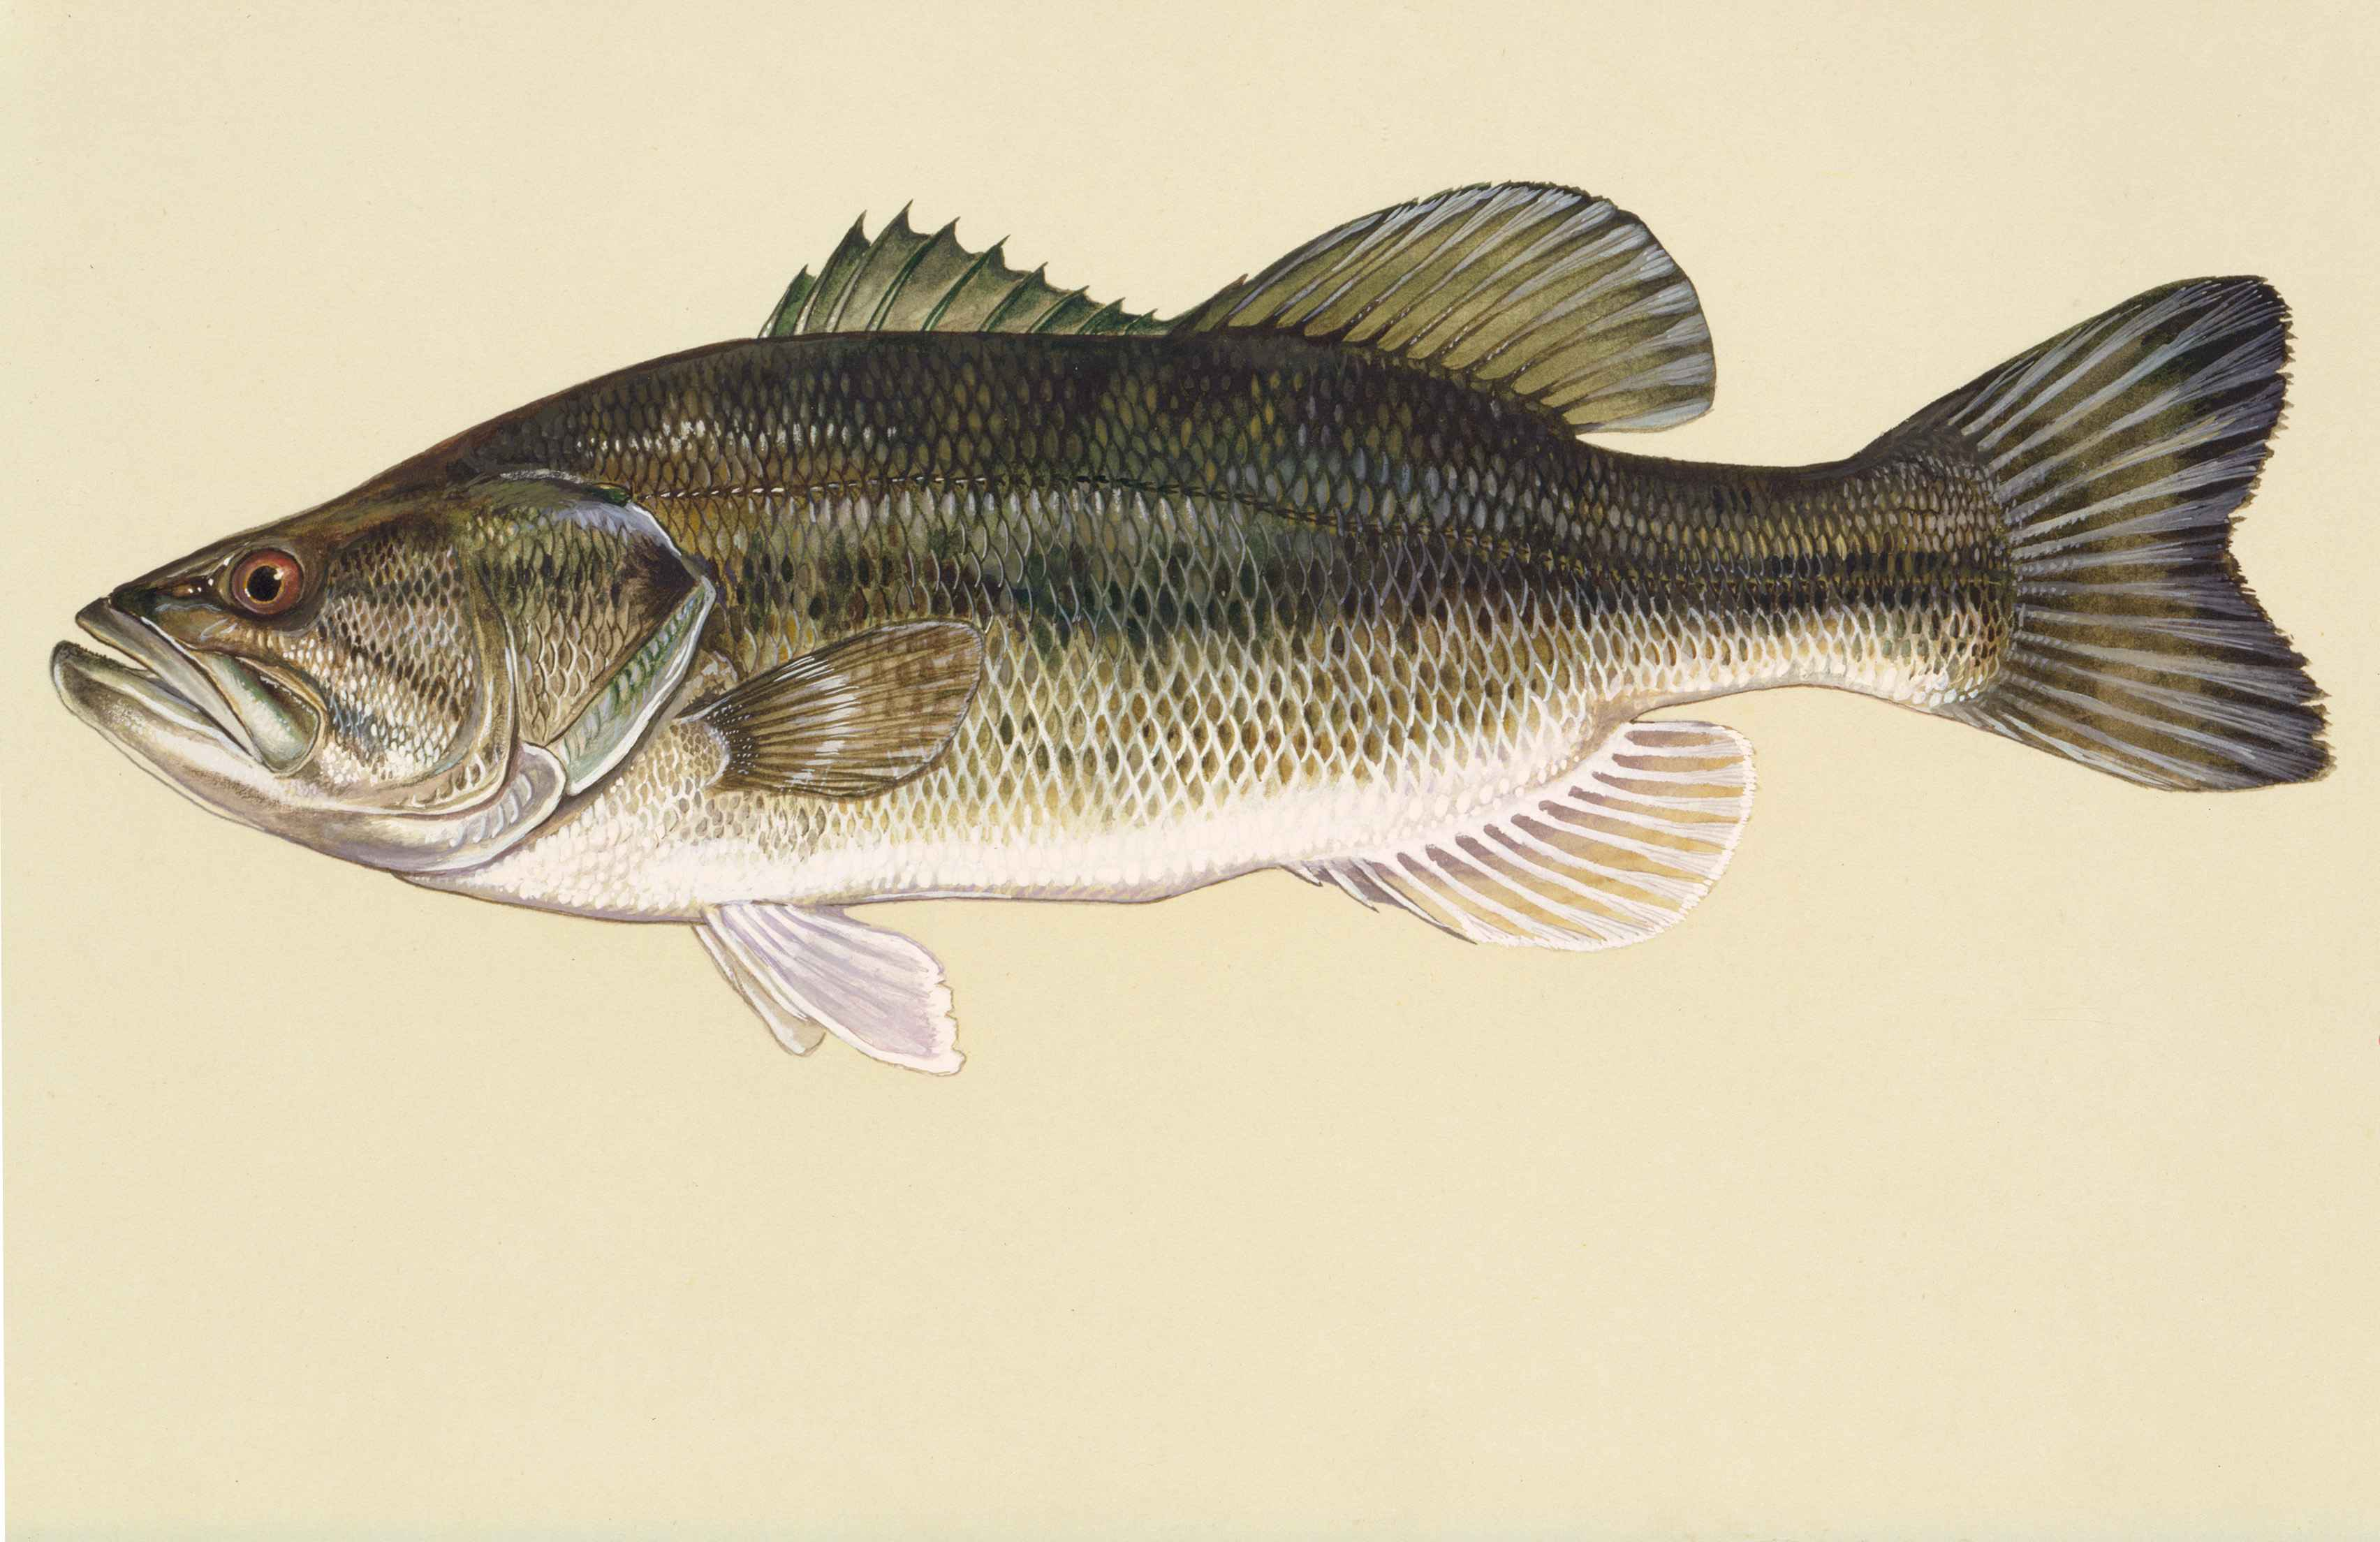 Large Mouth Bass Images 18